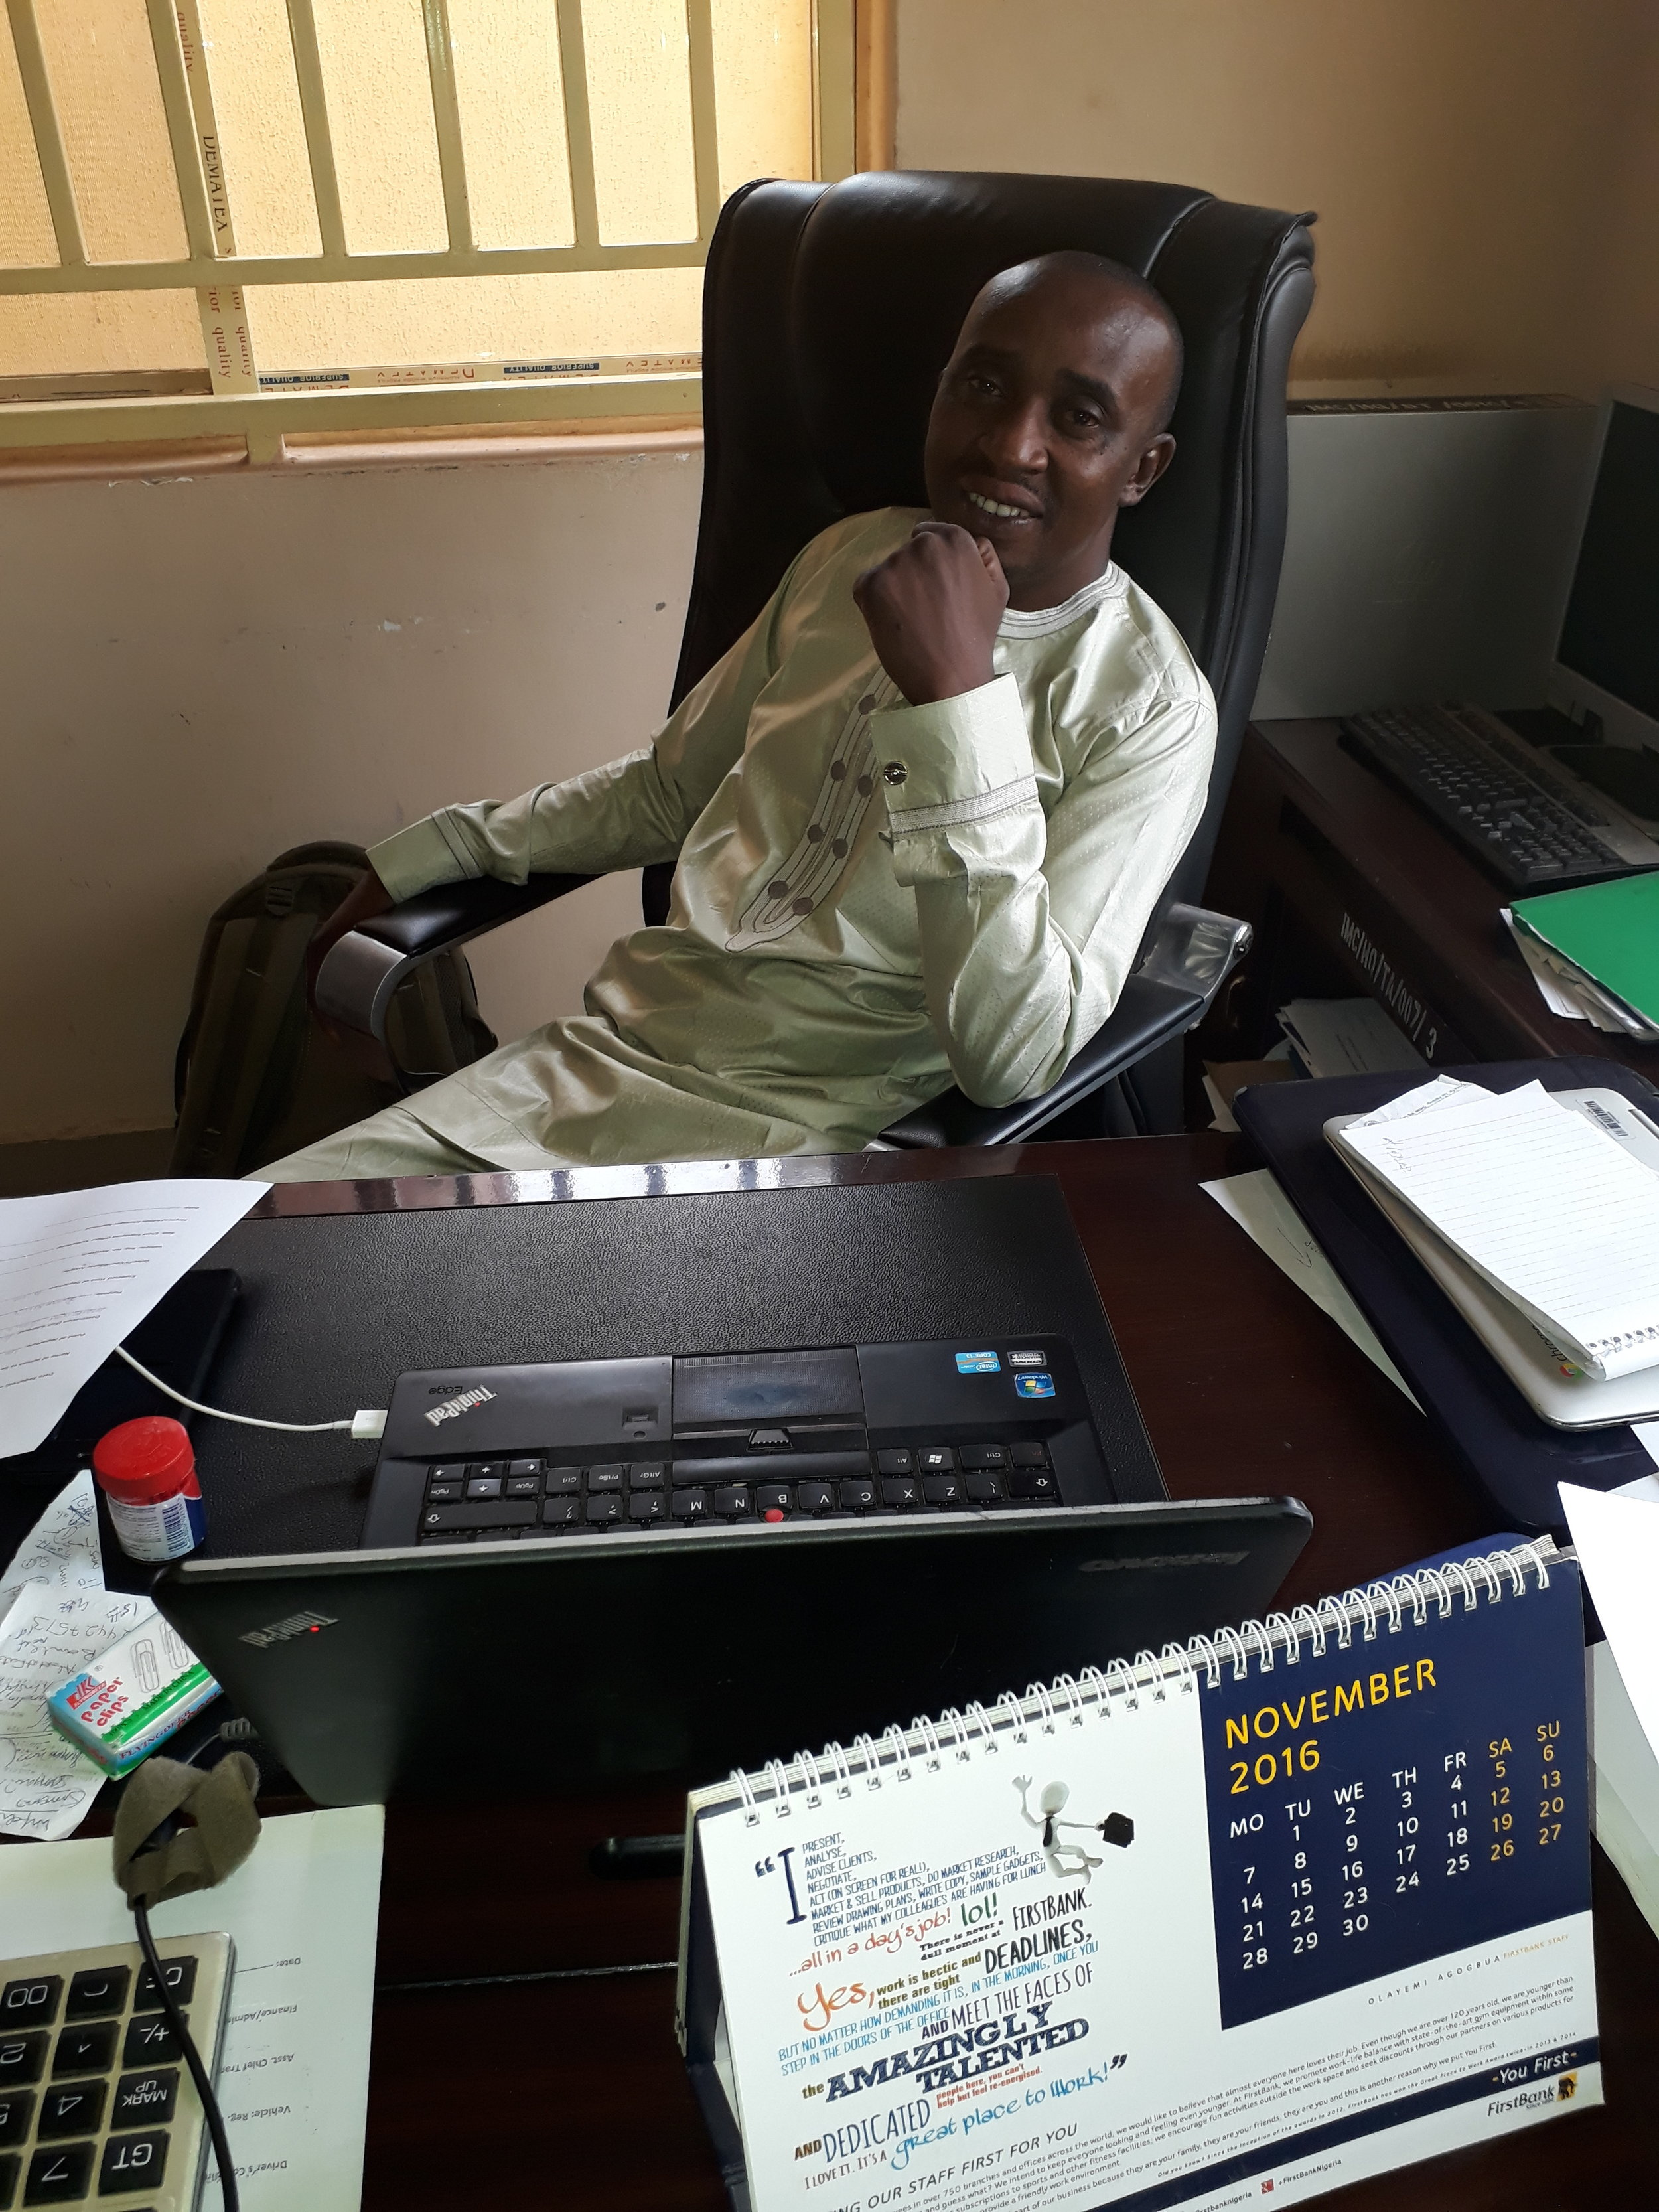 Timothy Adamu Yohanna, Finance and Administration Manager, IMC. Mobile number: 0803-800-4257 or 0803-692-2405. Email: adamsqueenmimi@gmail.com/shelmadinee@yahoo.com